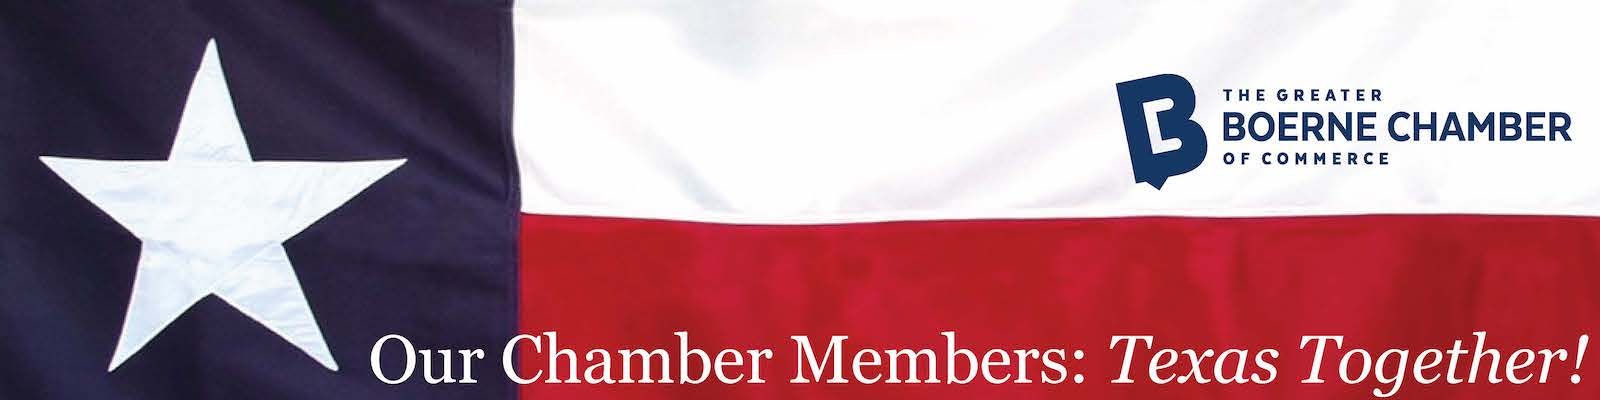 Our Chamber Members: Texas Together!